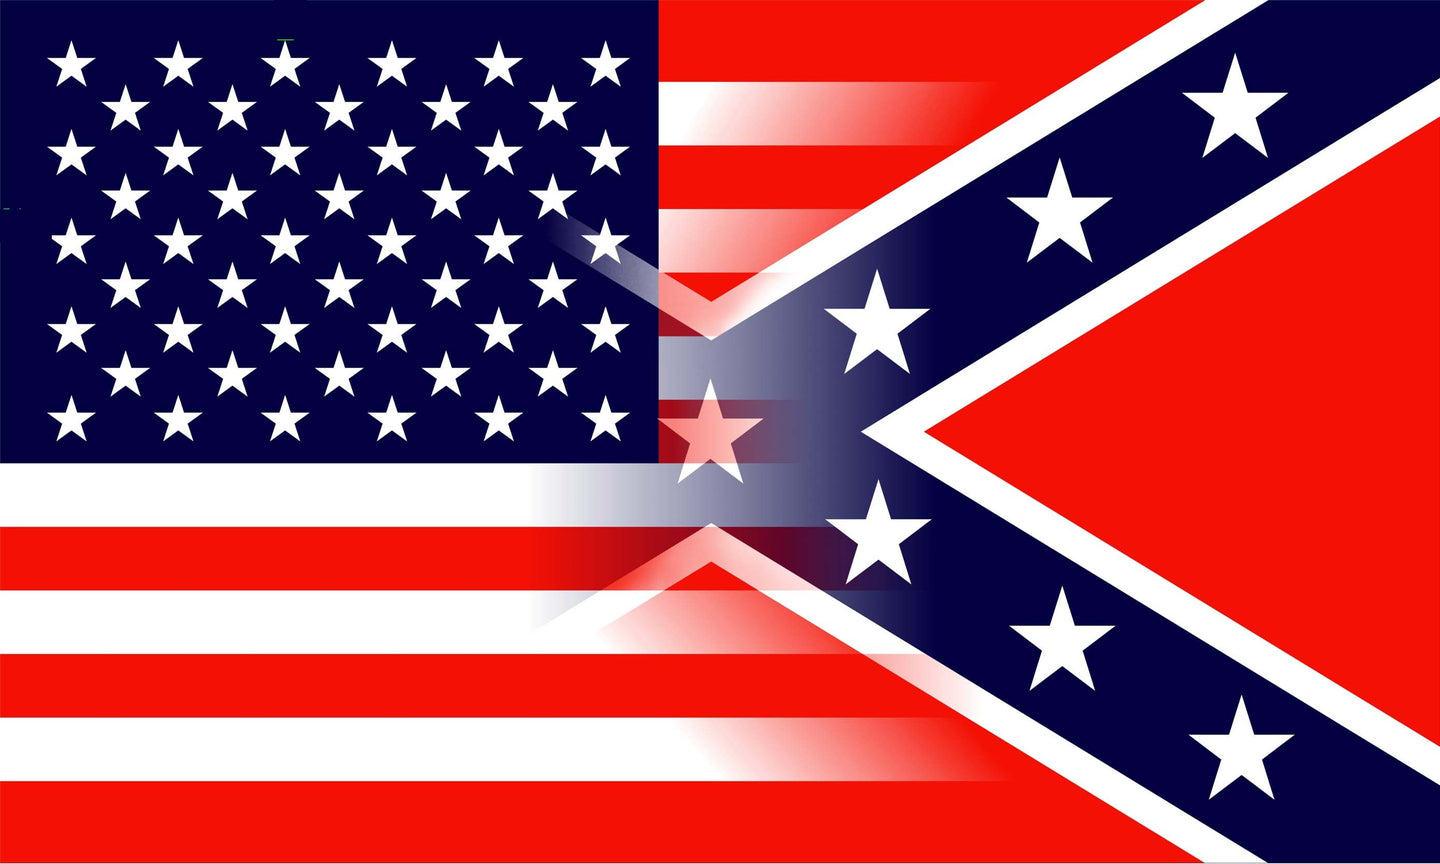 USA/Confederate Flag